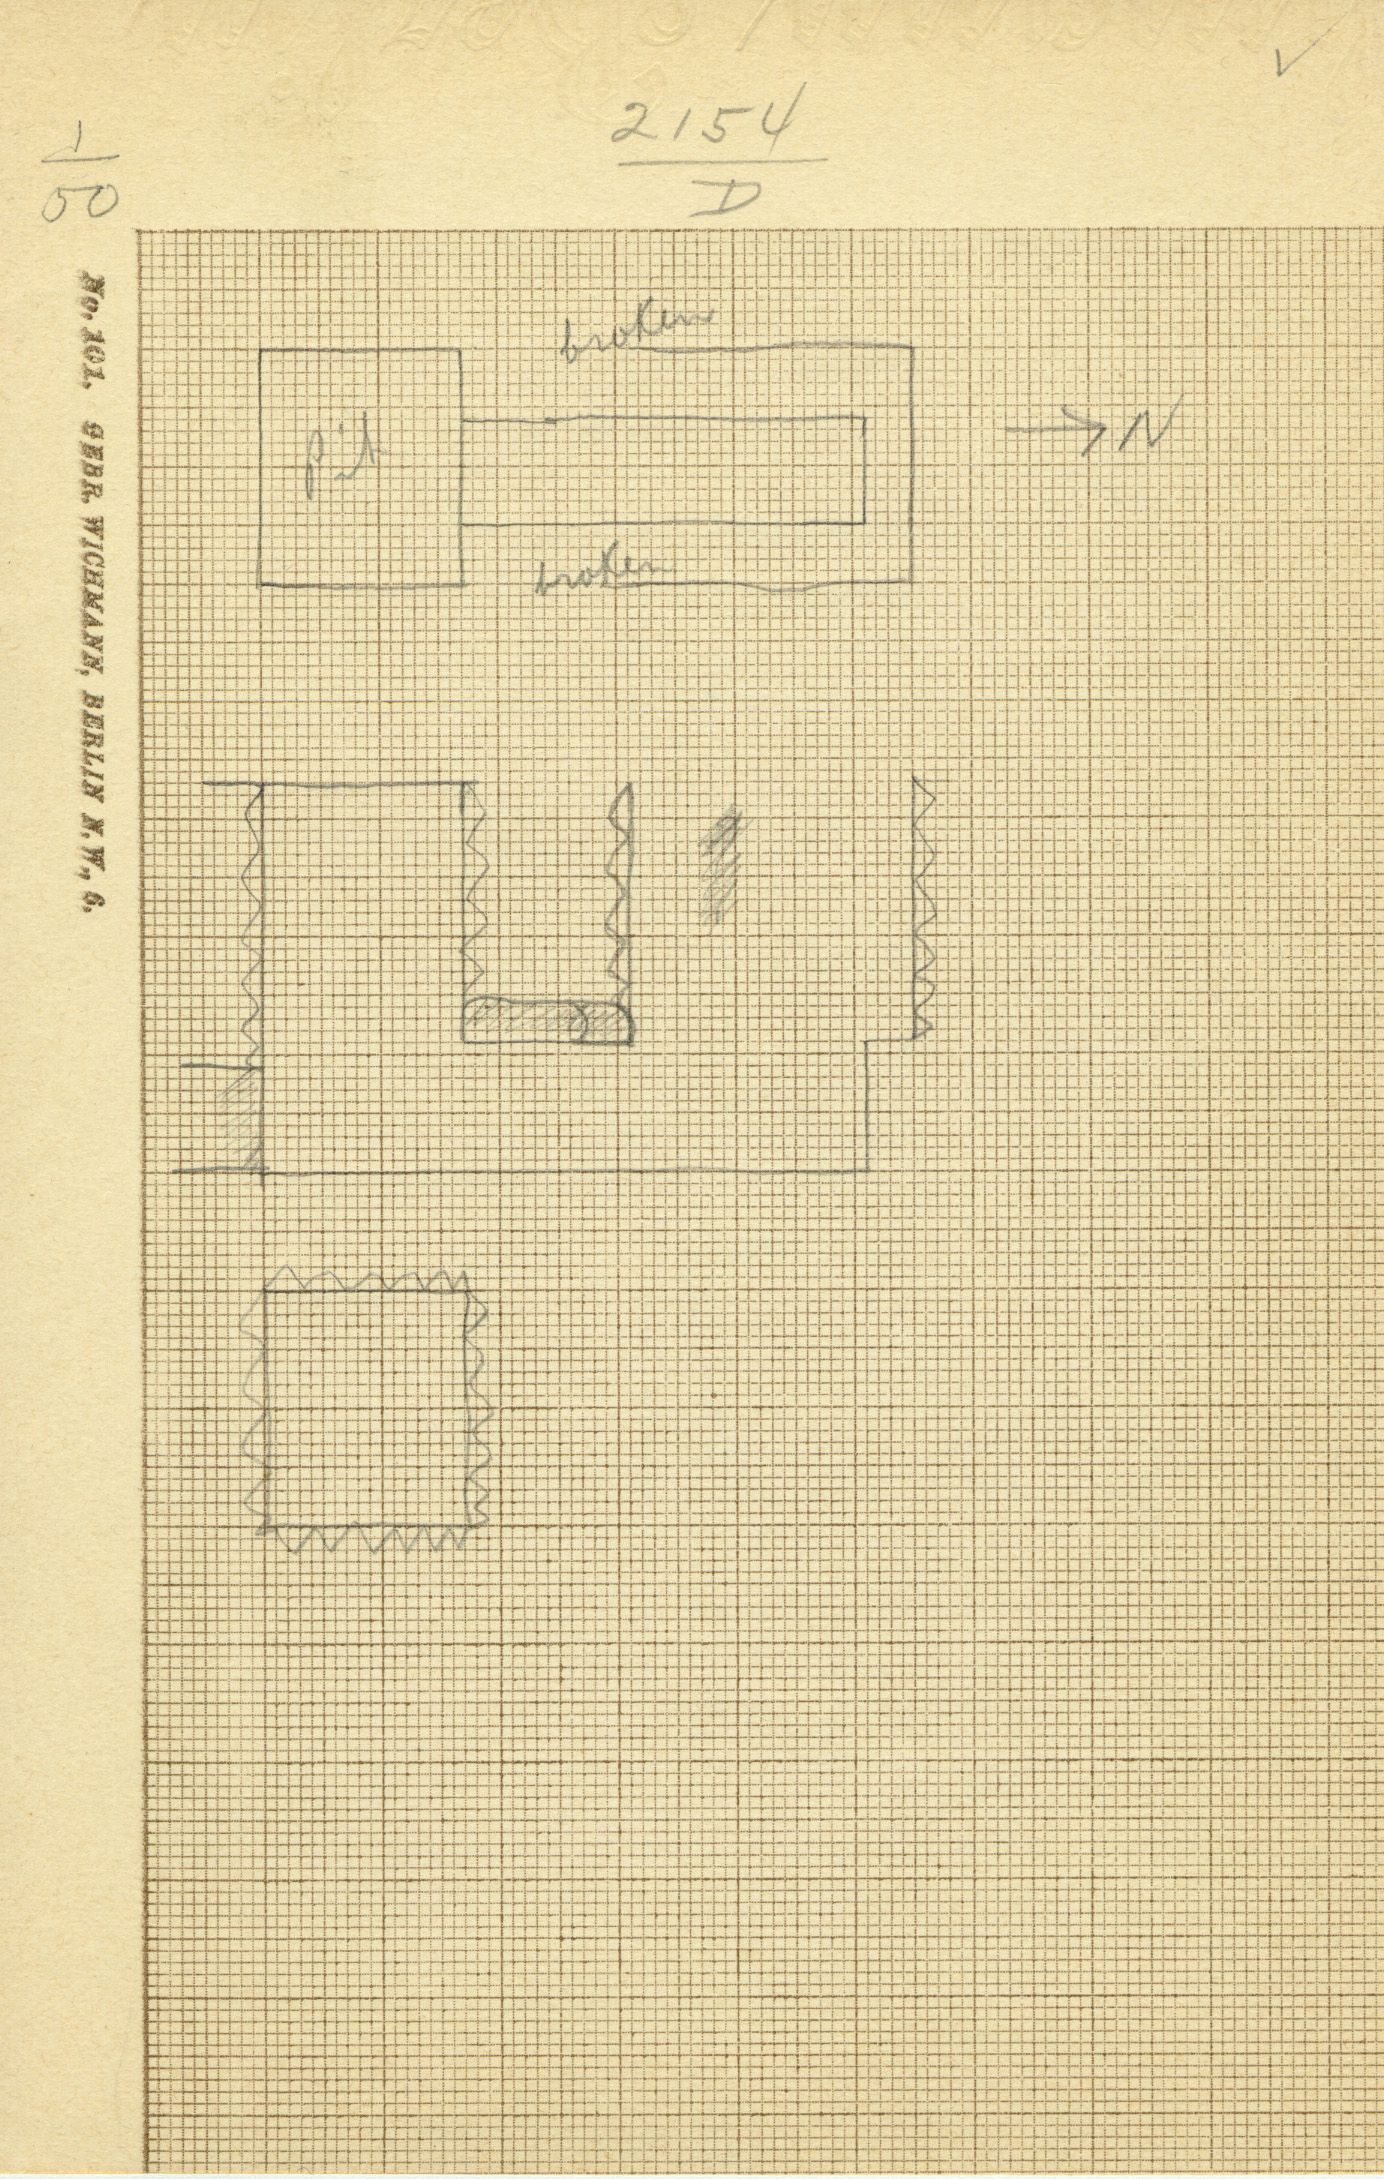 Maps and plans: G 2154, Shaft C and D